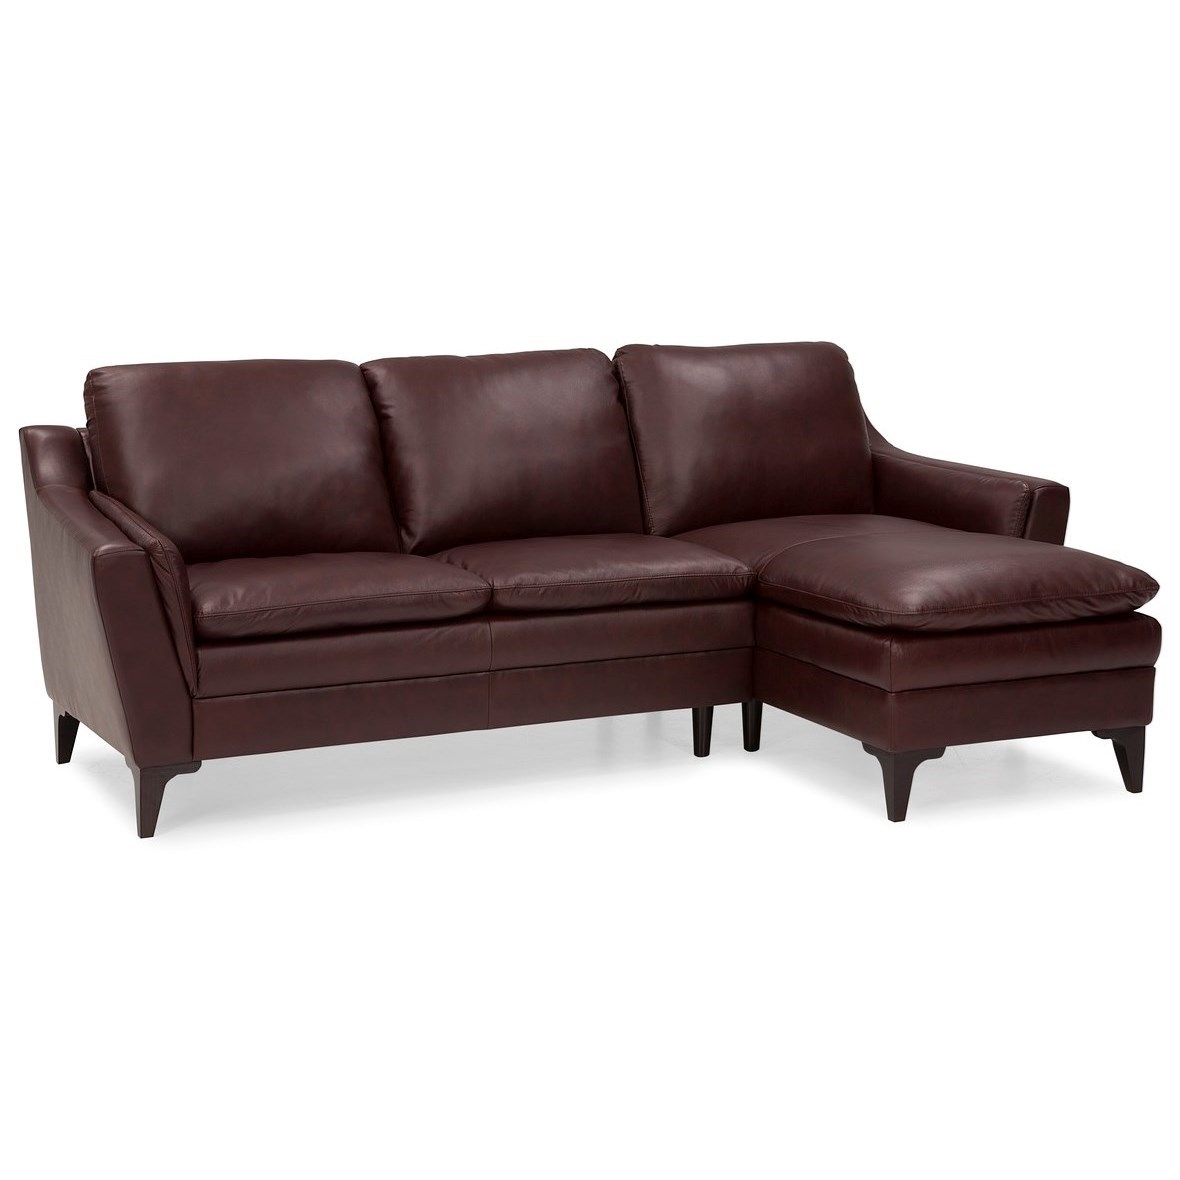 Balmoral 2 Piece Sectional by Palliser at Furniture and ApplianceMart